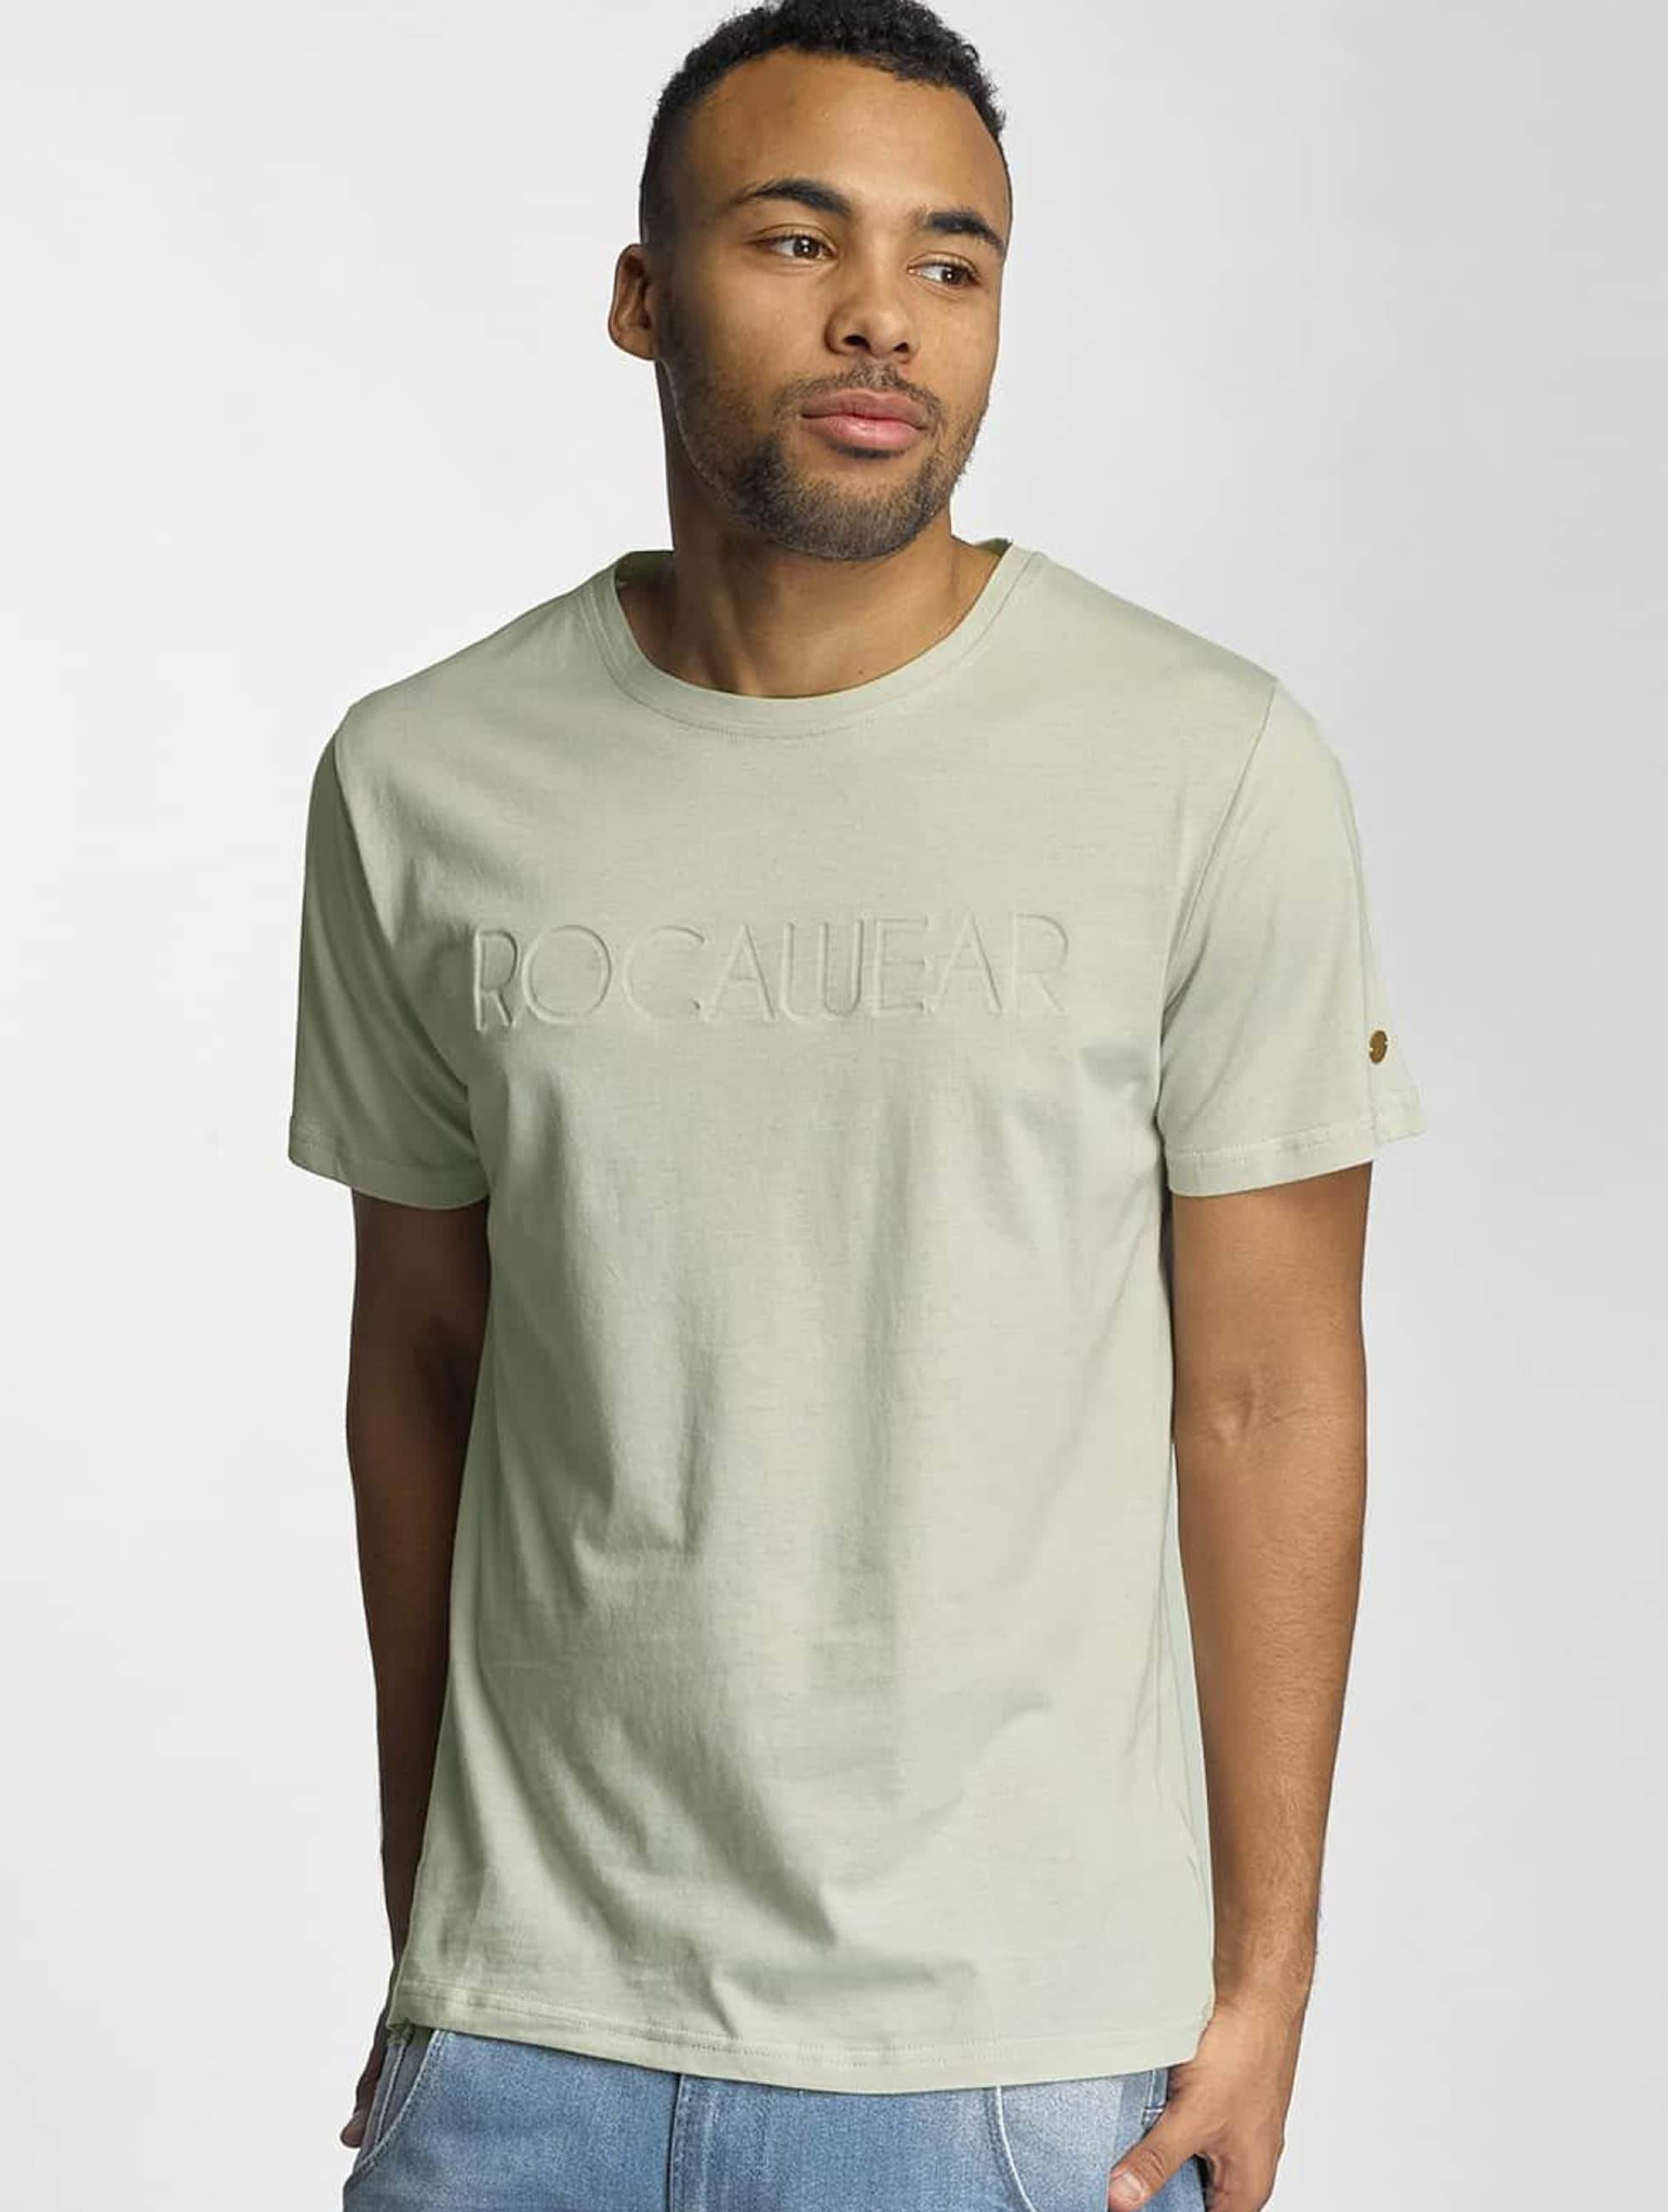 Rocawear / T-Shirt Logo in olive L